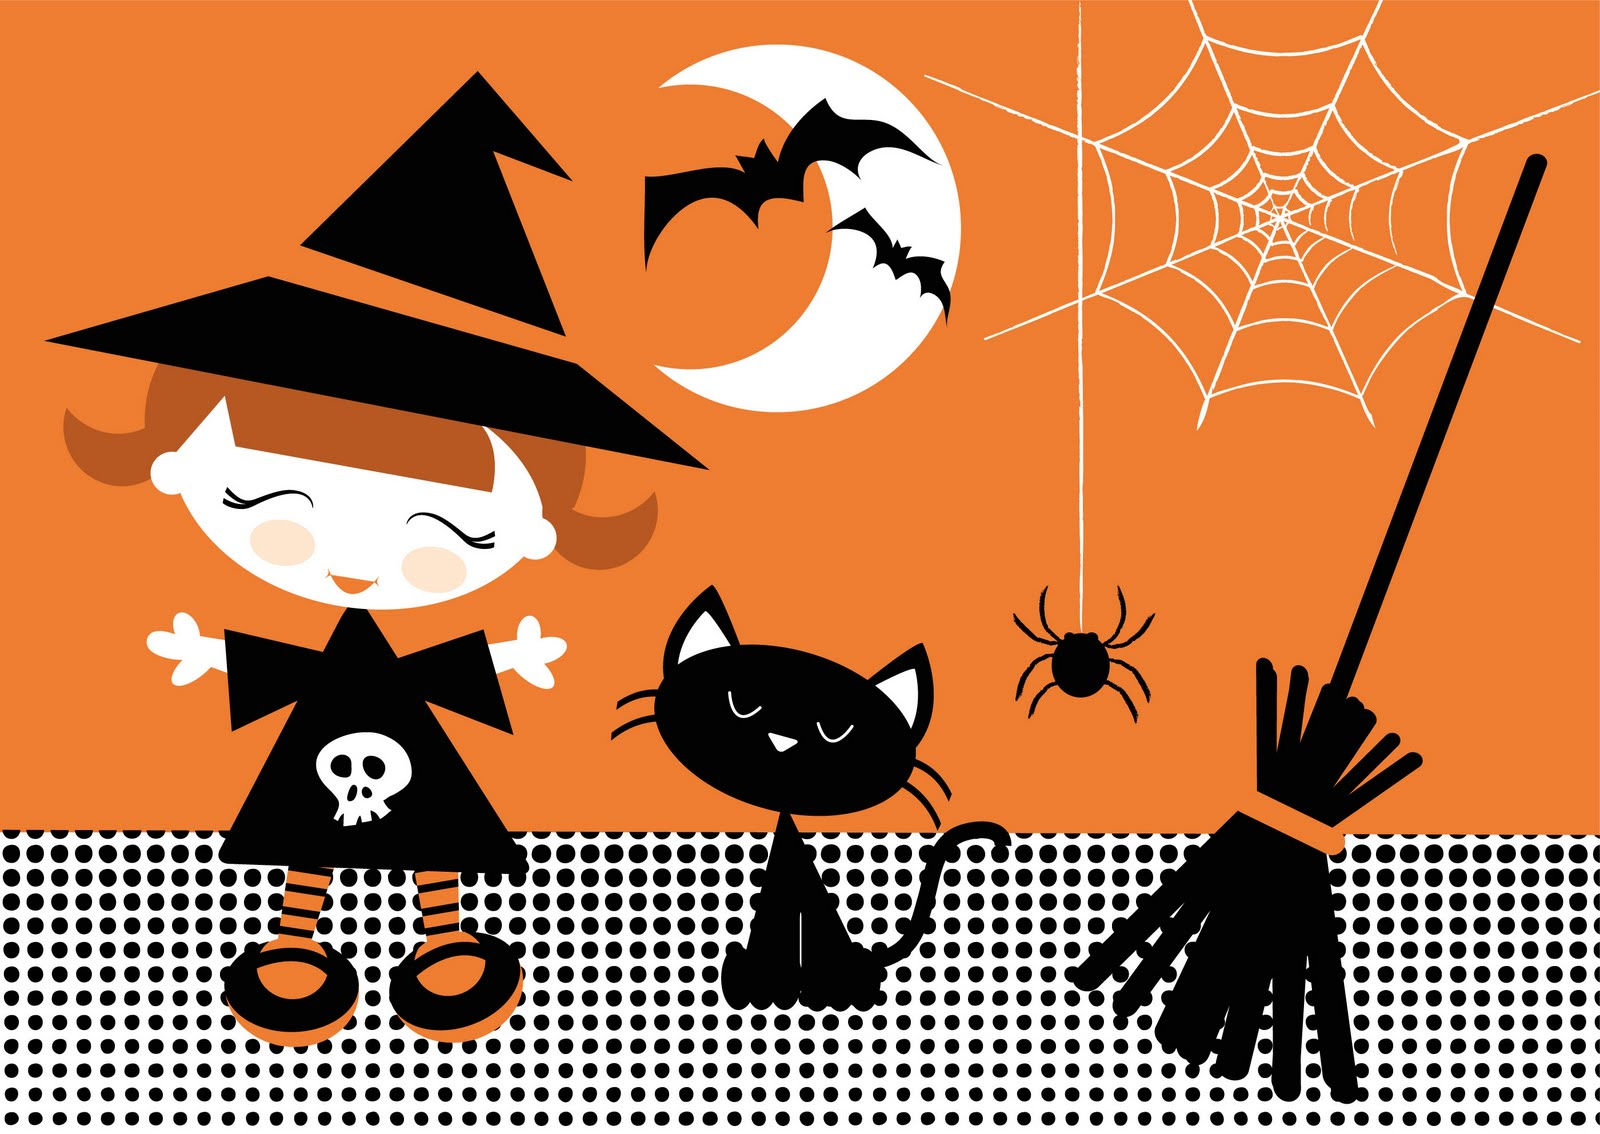 Cute Halloween Spiders Halloween illustrations ready!